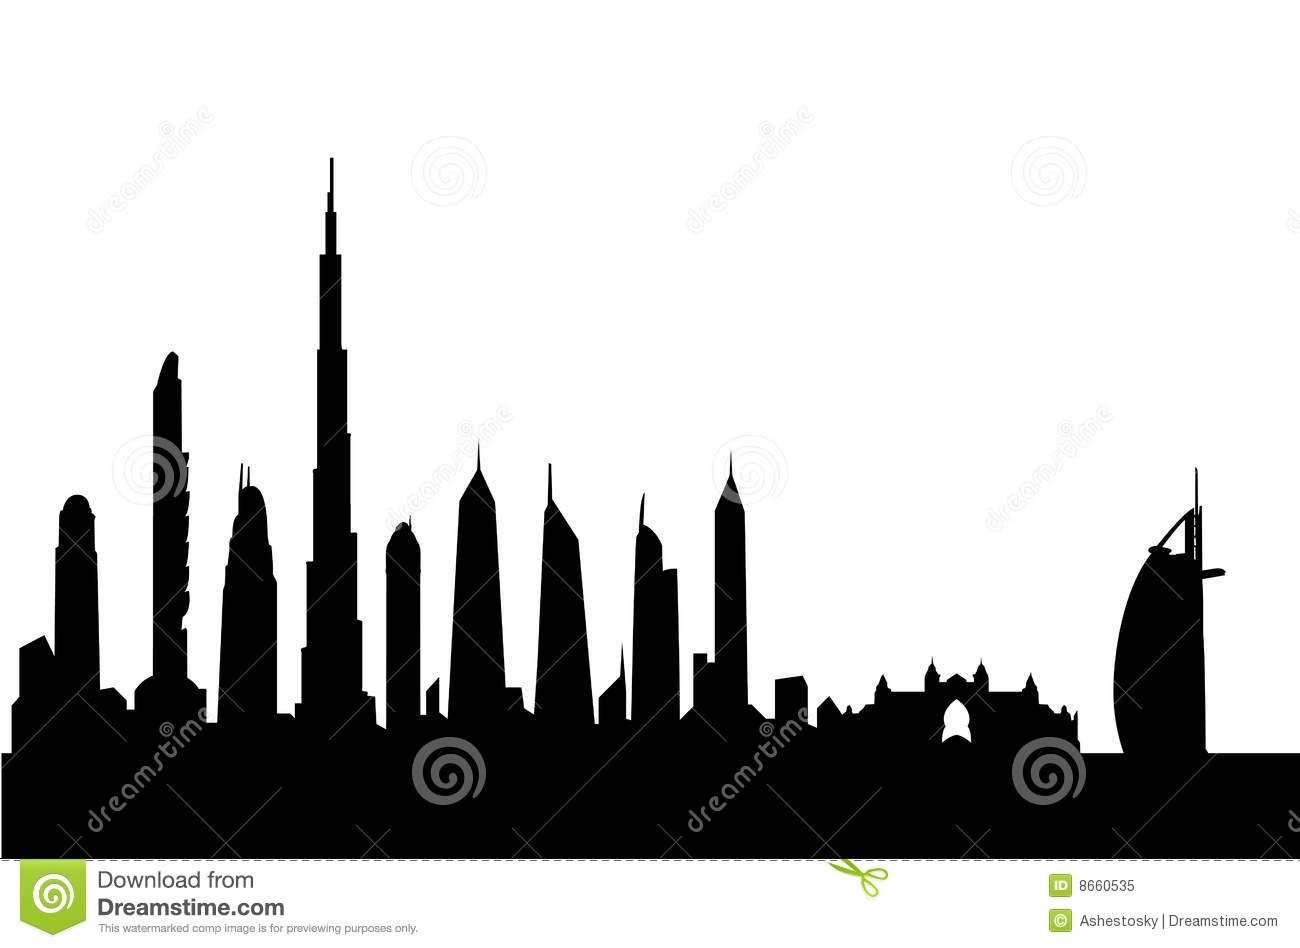 Building Silhouette Clipart.